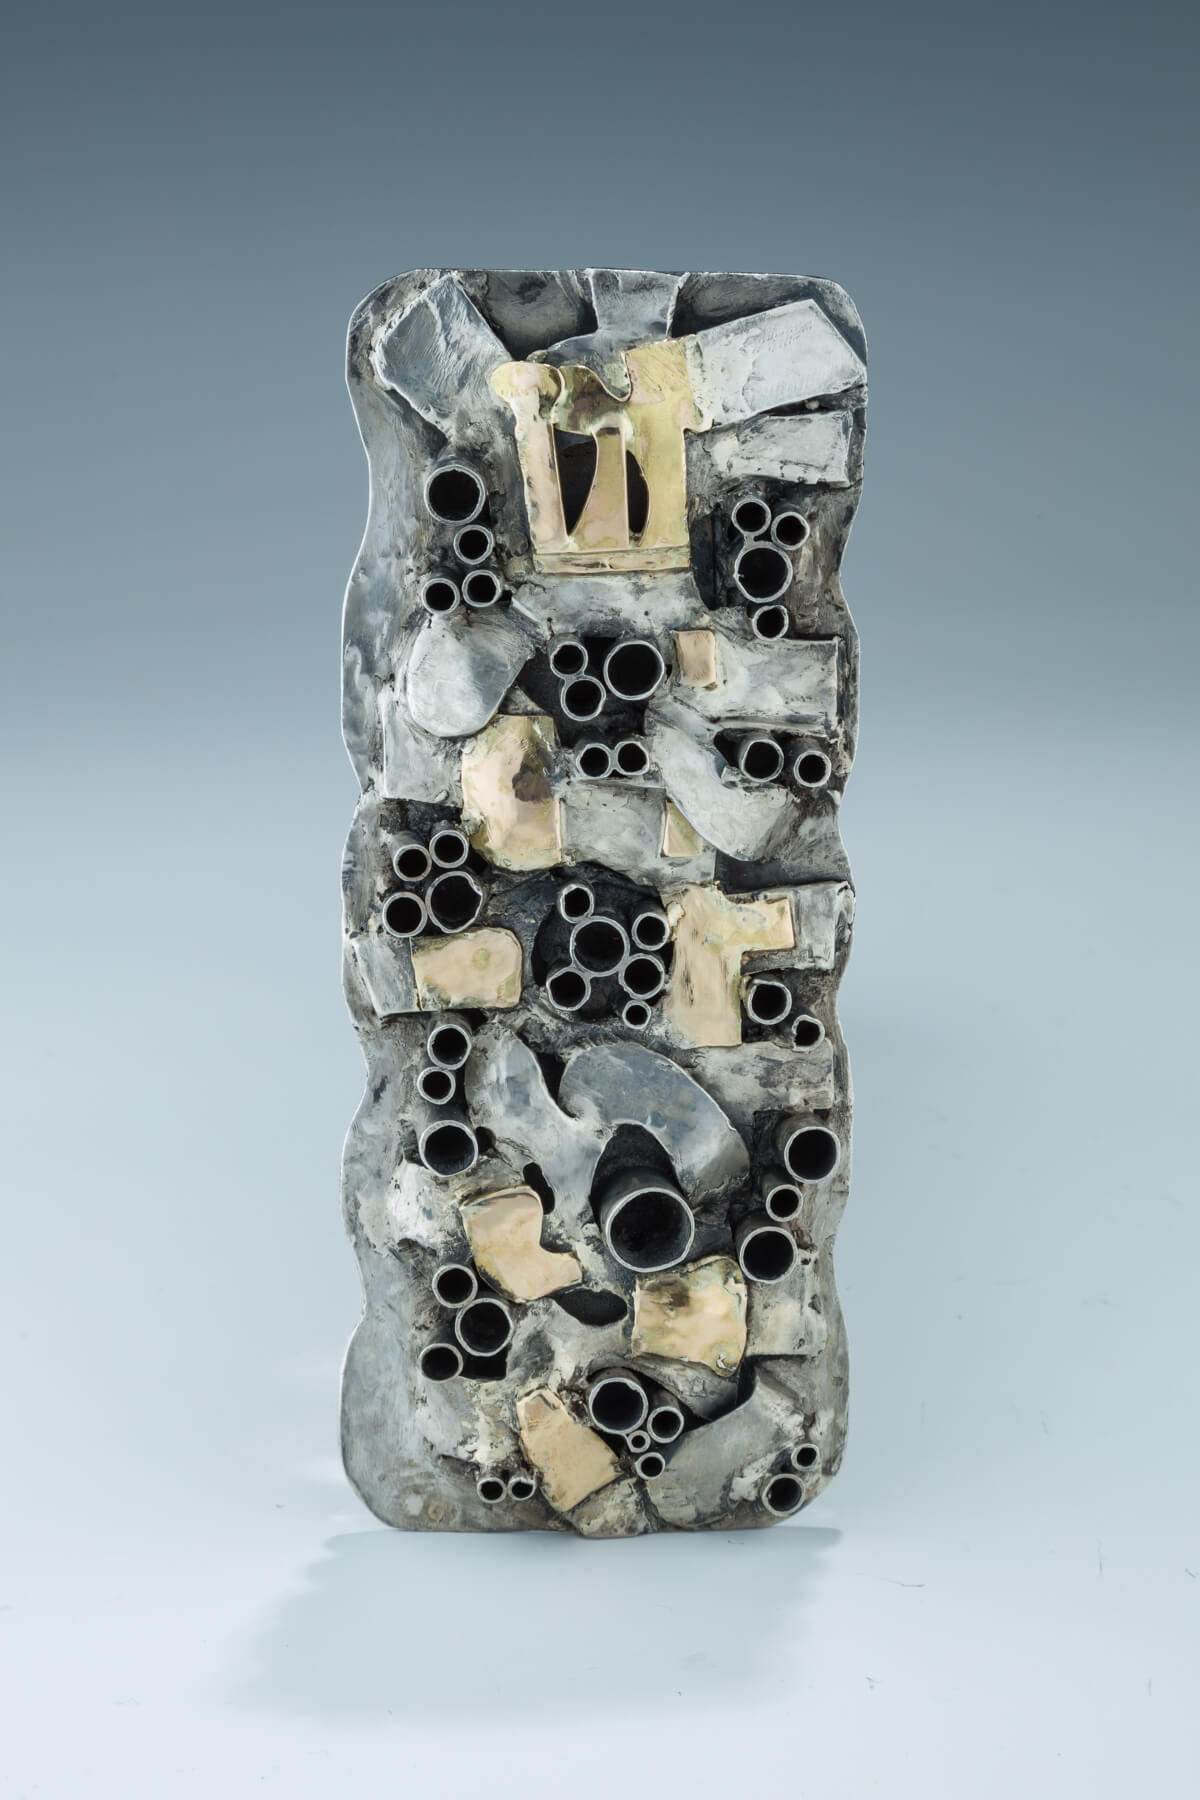 101. A Sterling Silver And Gold Mezuzah Case By Reisa Schor